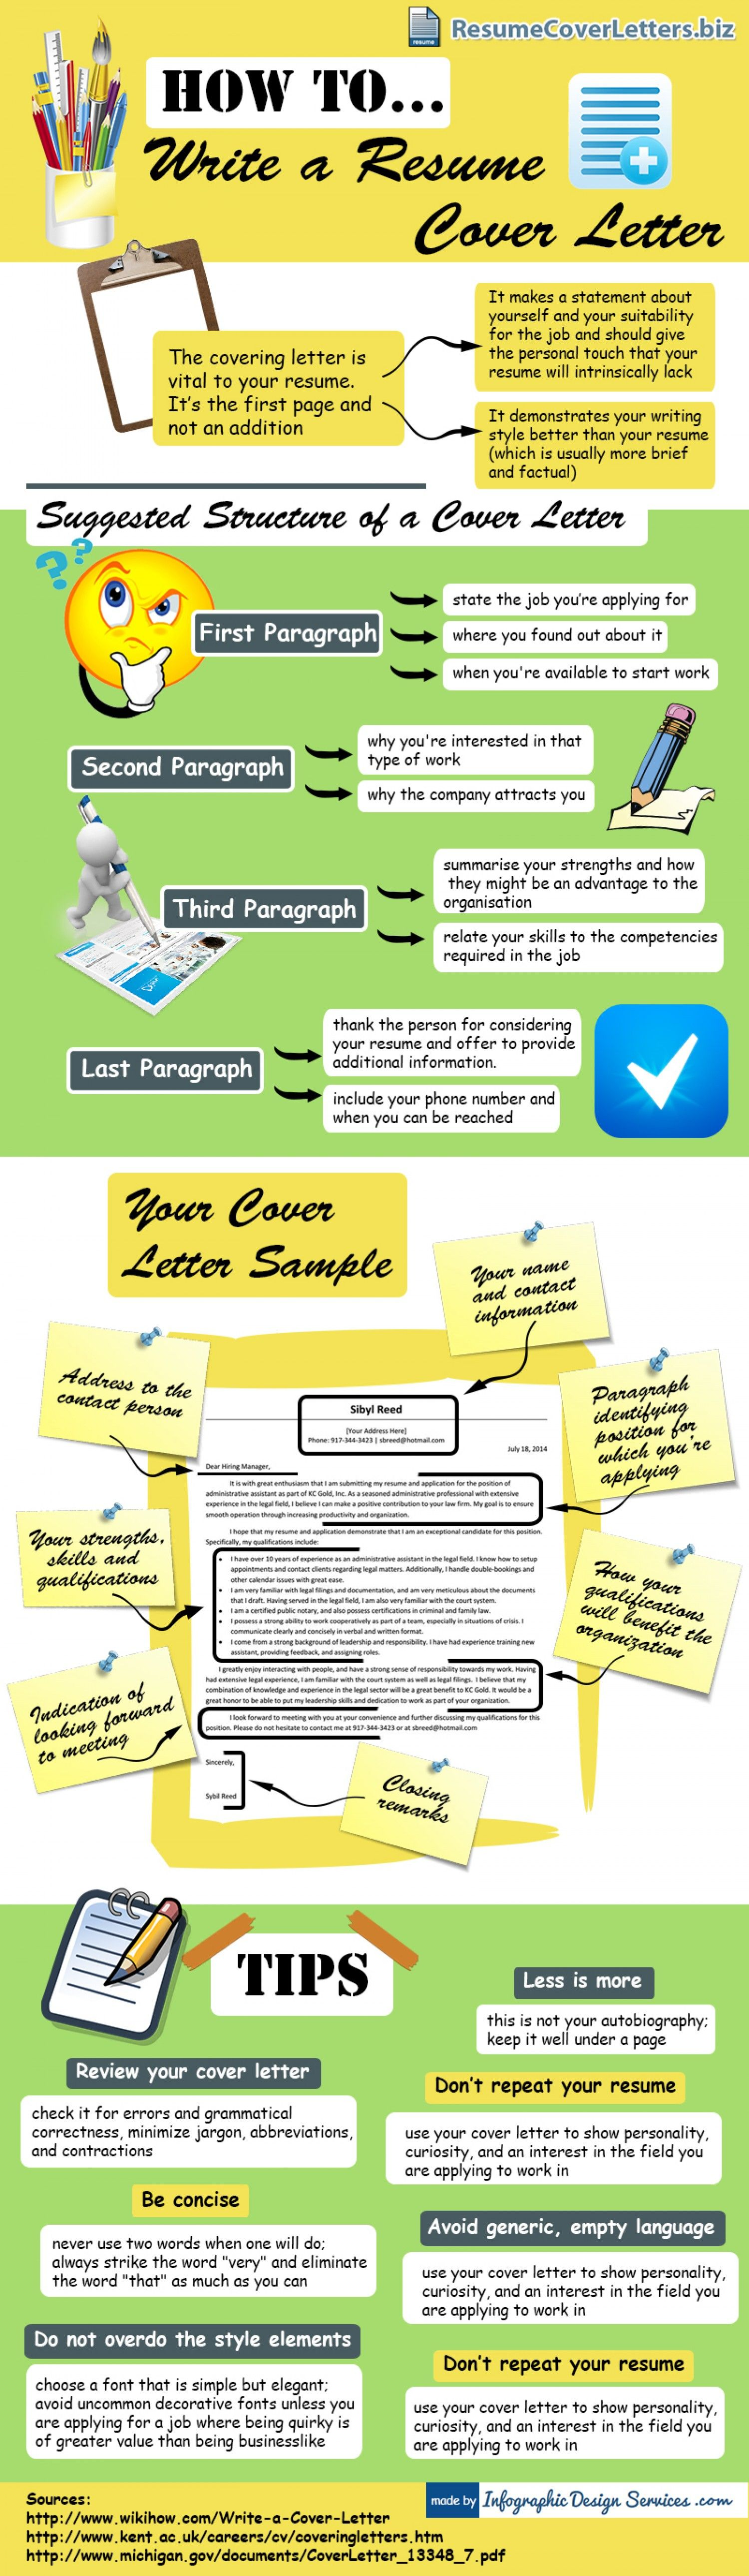 resume cover letter writing tips infographic - Writing A Cover Letter For A Resume